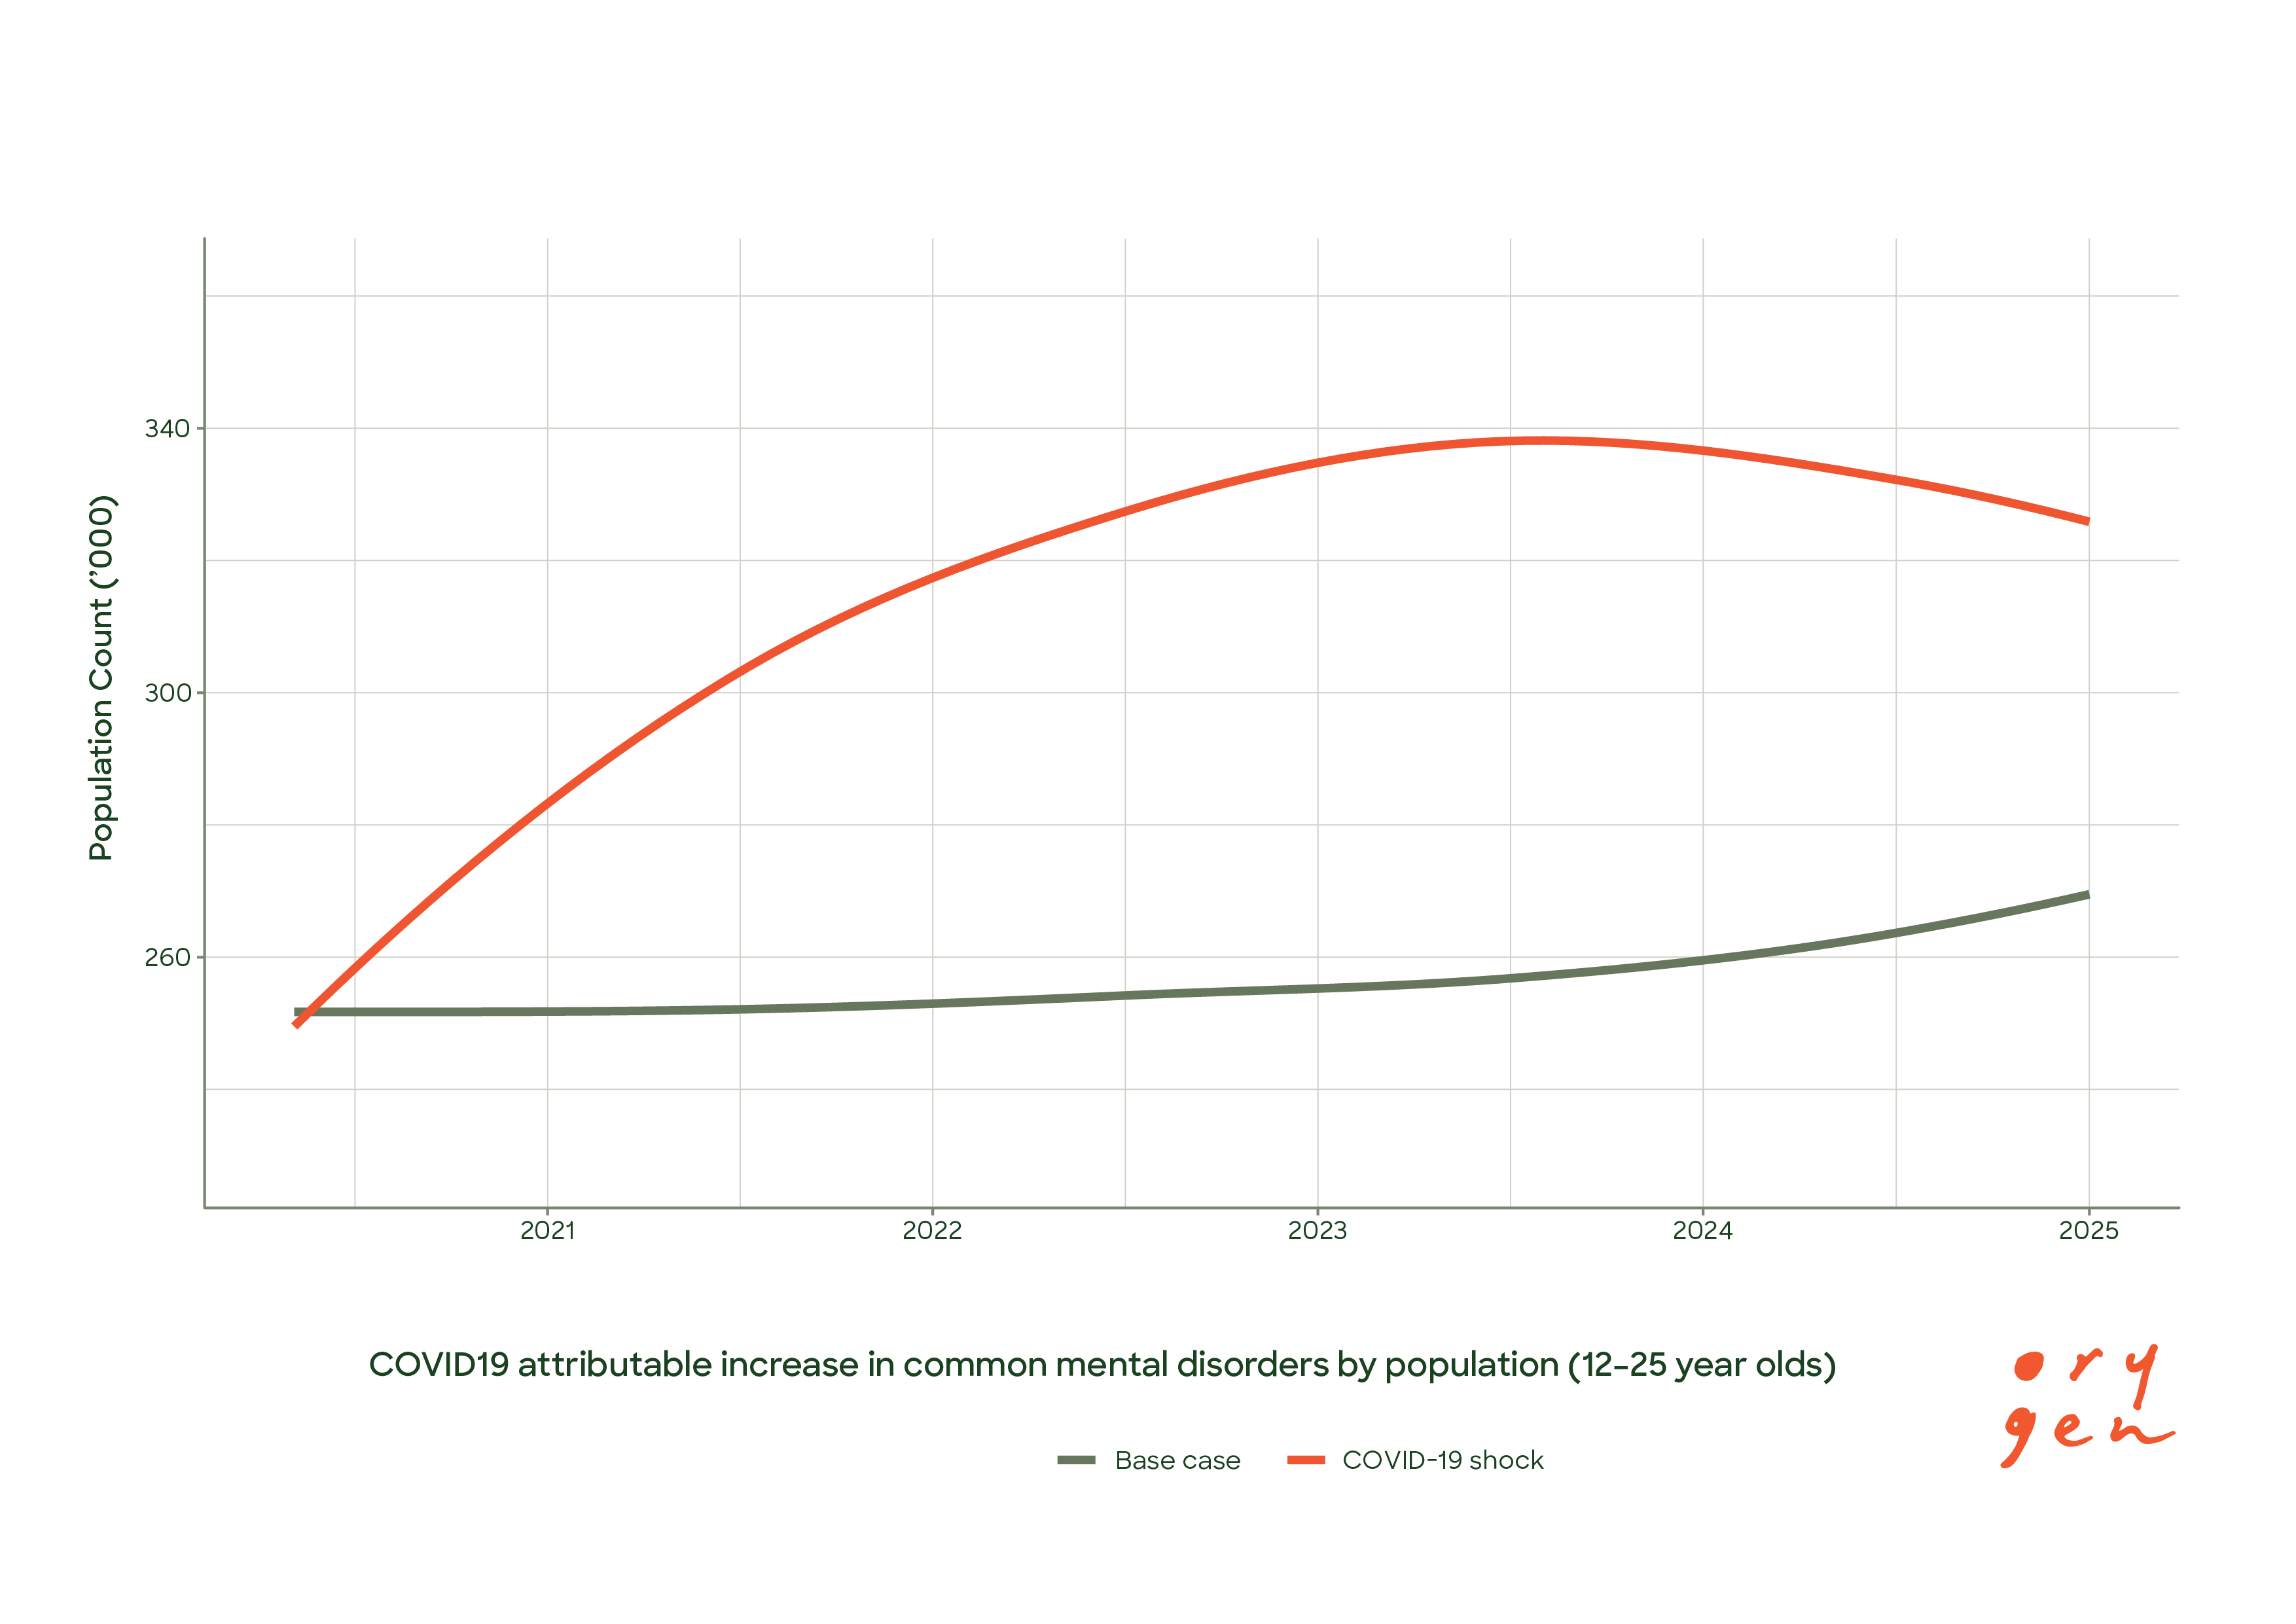 COVID19 attributable increase in common mental disorders by population (12-25 year olds)